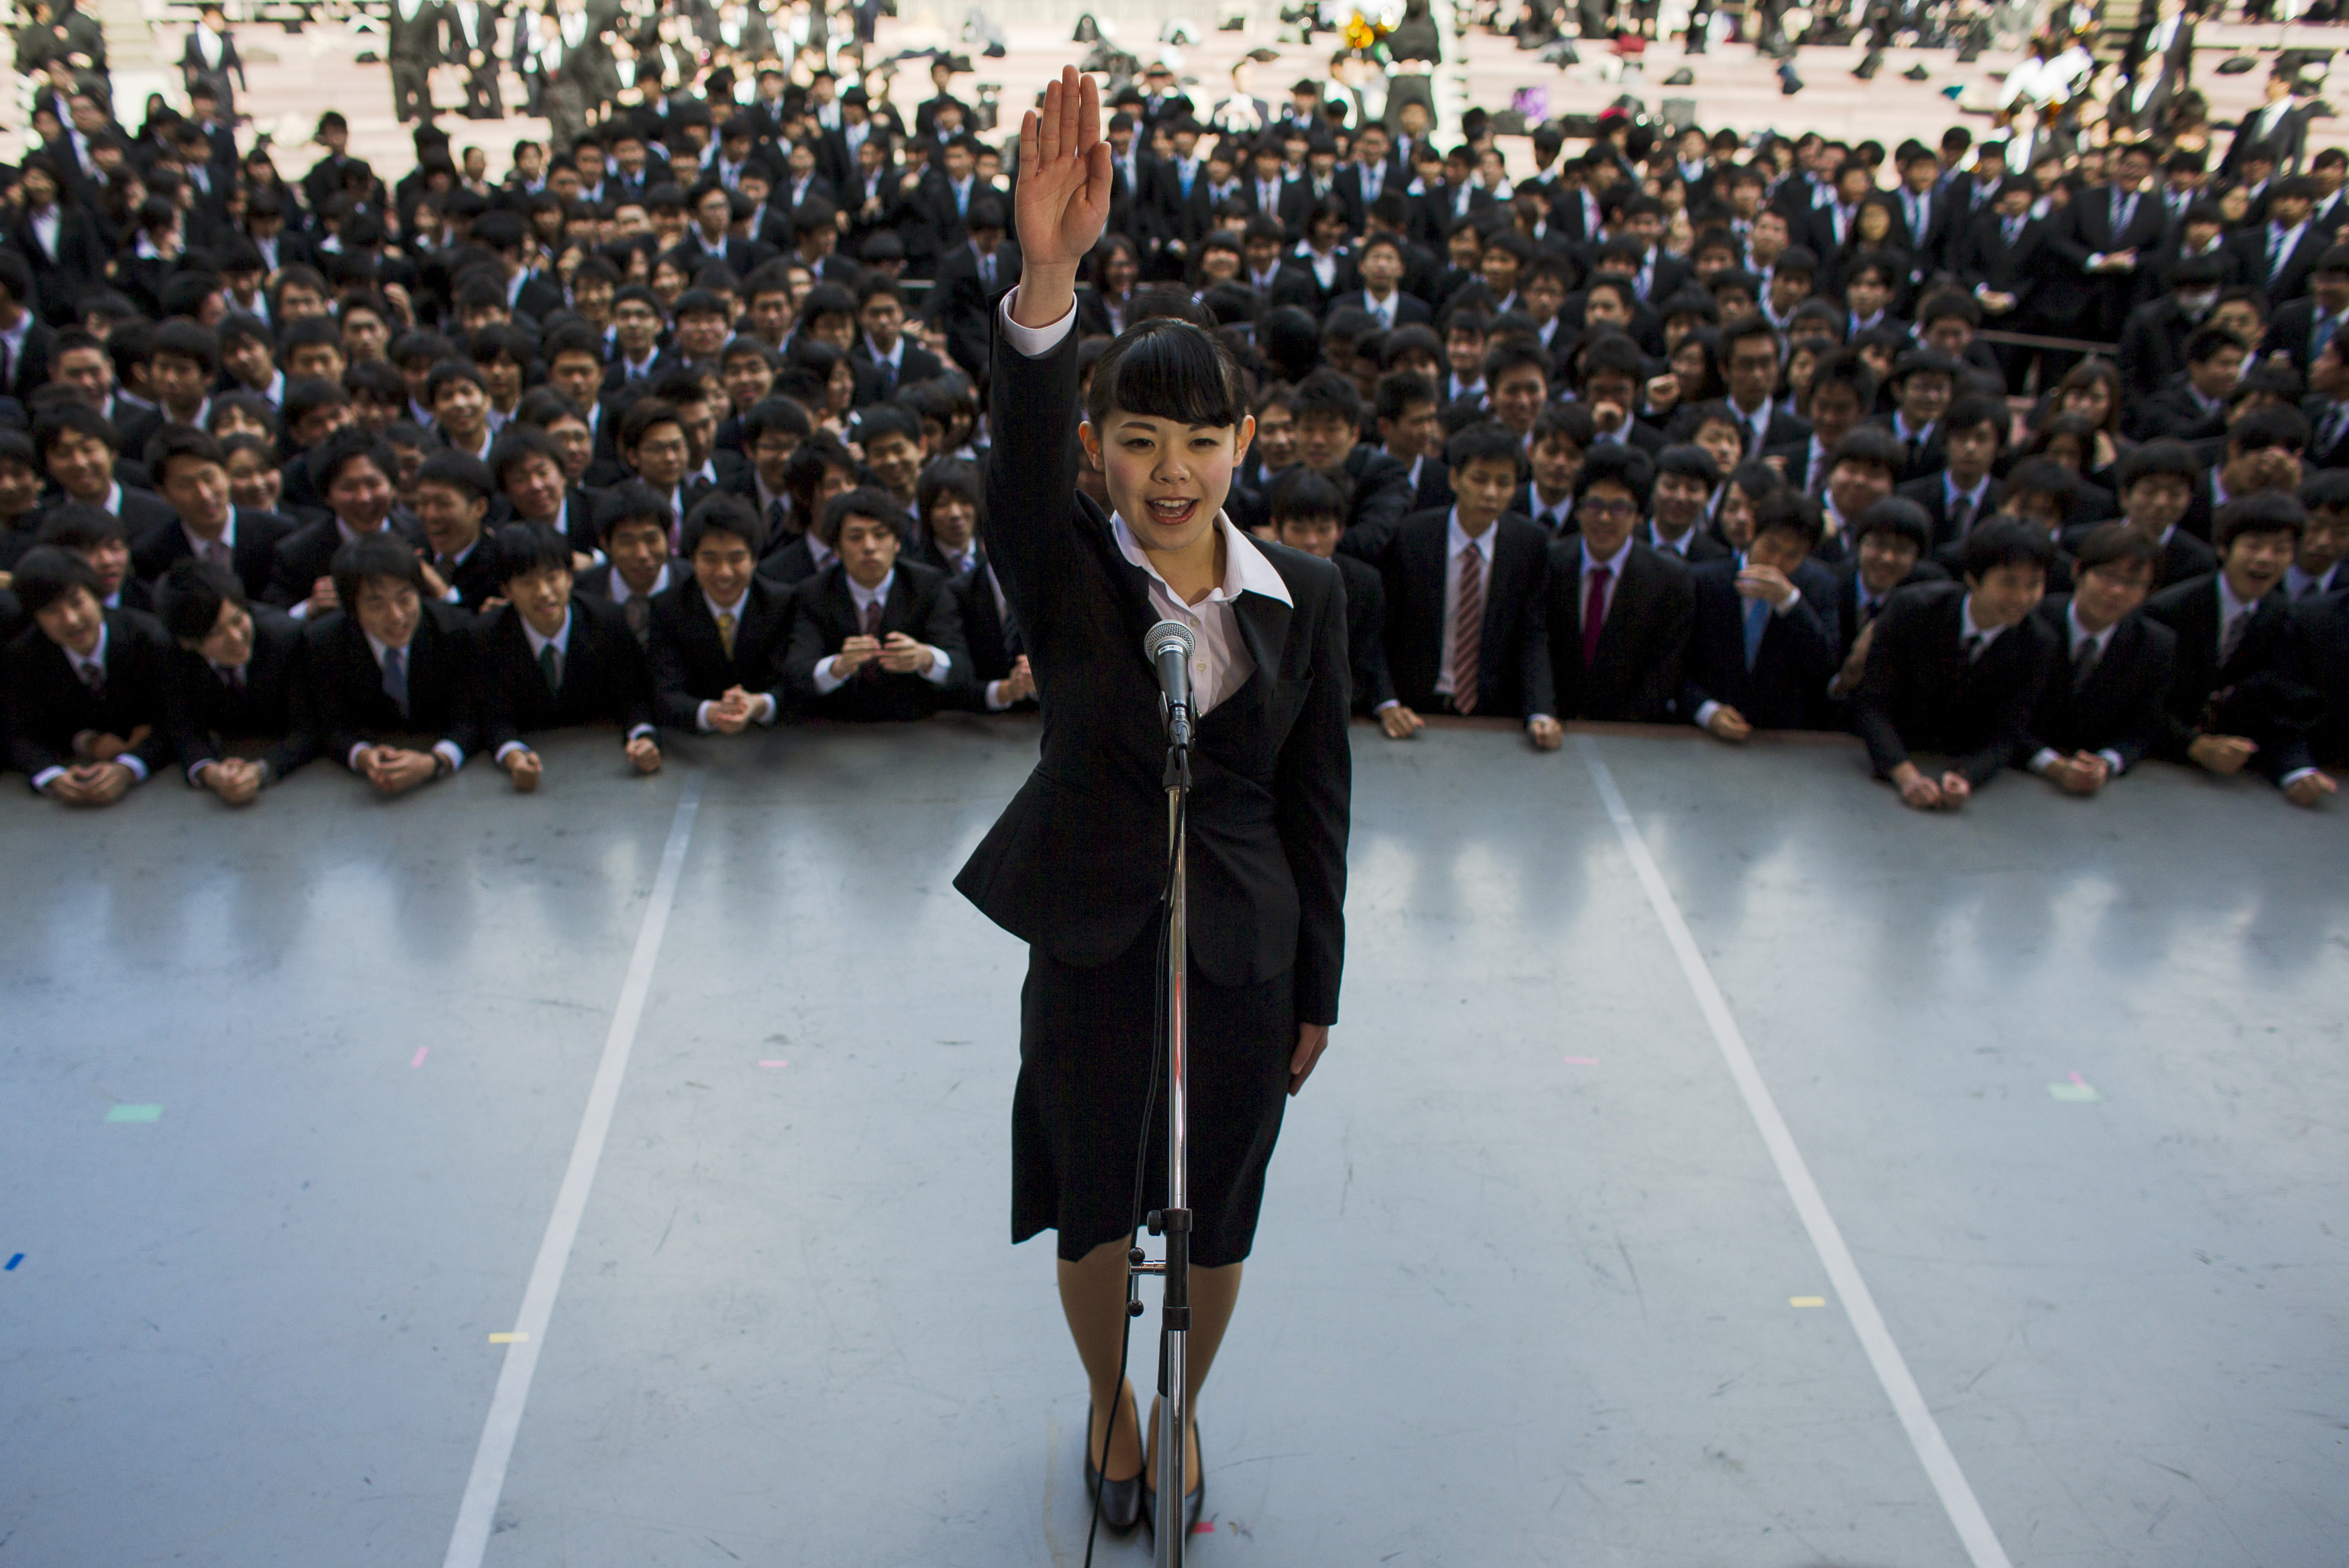 A Japanese college graduate publicly promises that she will do her best in trying to find work during a job-hunting rally at an outdoor theatre in Tokyo.